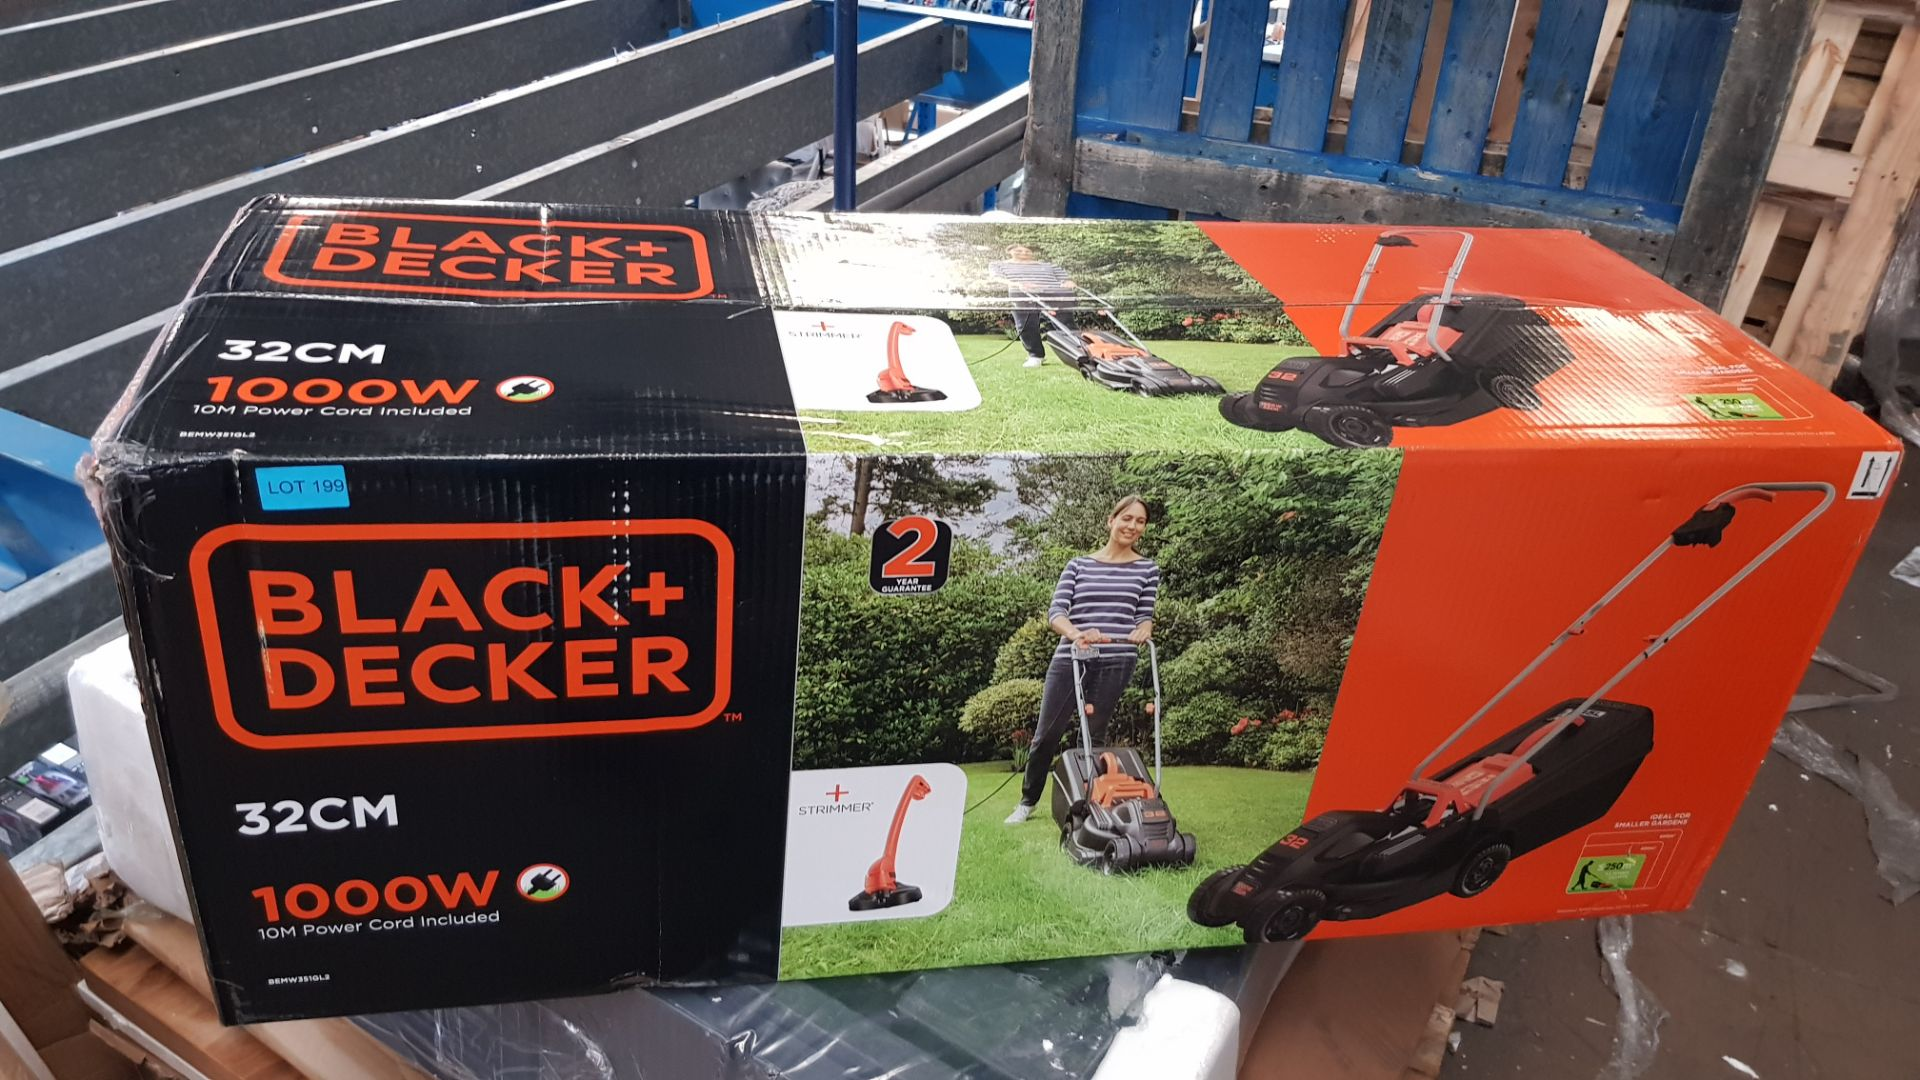 (P7) 1x Black & Decker 32cm 1000W 10m Corded Lawn Mower & Strimmer RRP £99. New, Sealed Item. - Image 3 of 3